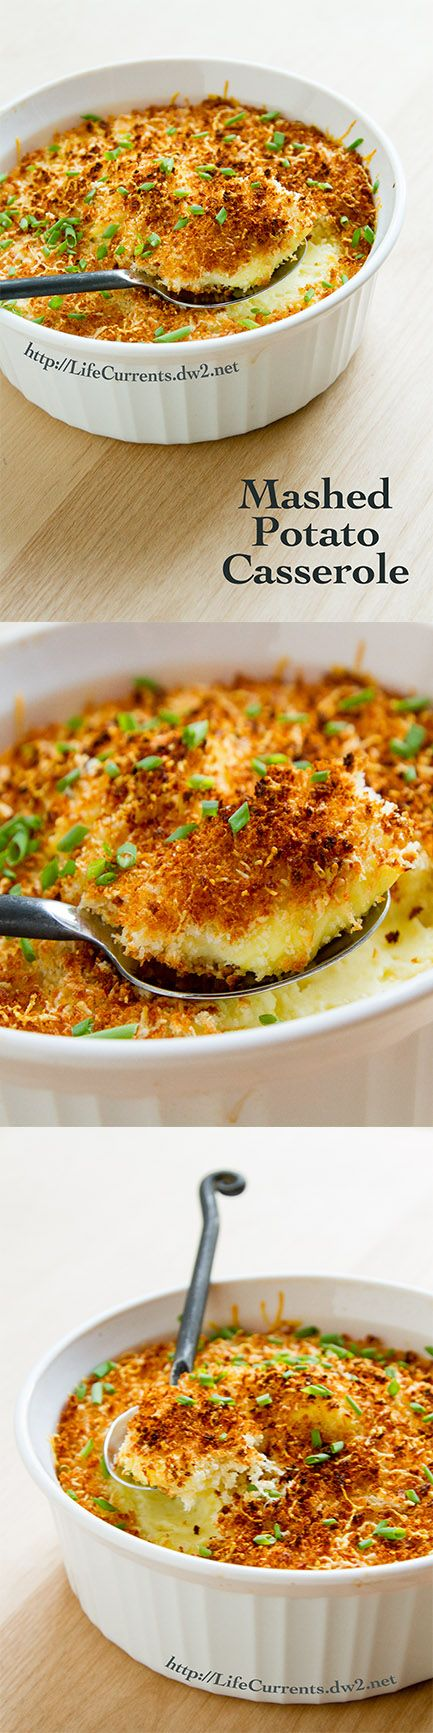 Mashed Potato Casserole a great side dish that's a little fancy! This will be a big hit at Eater dinner!